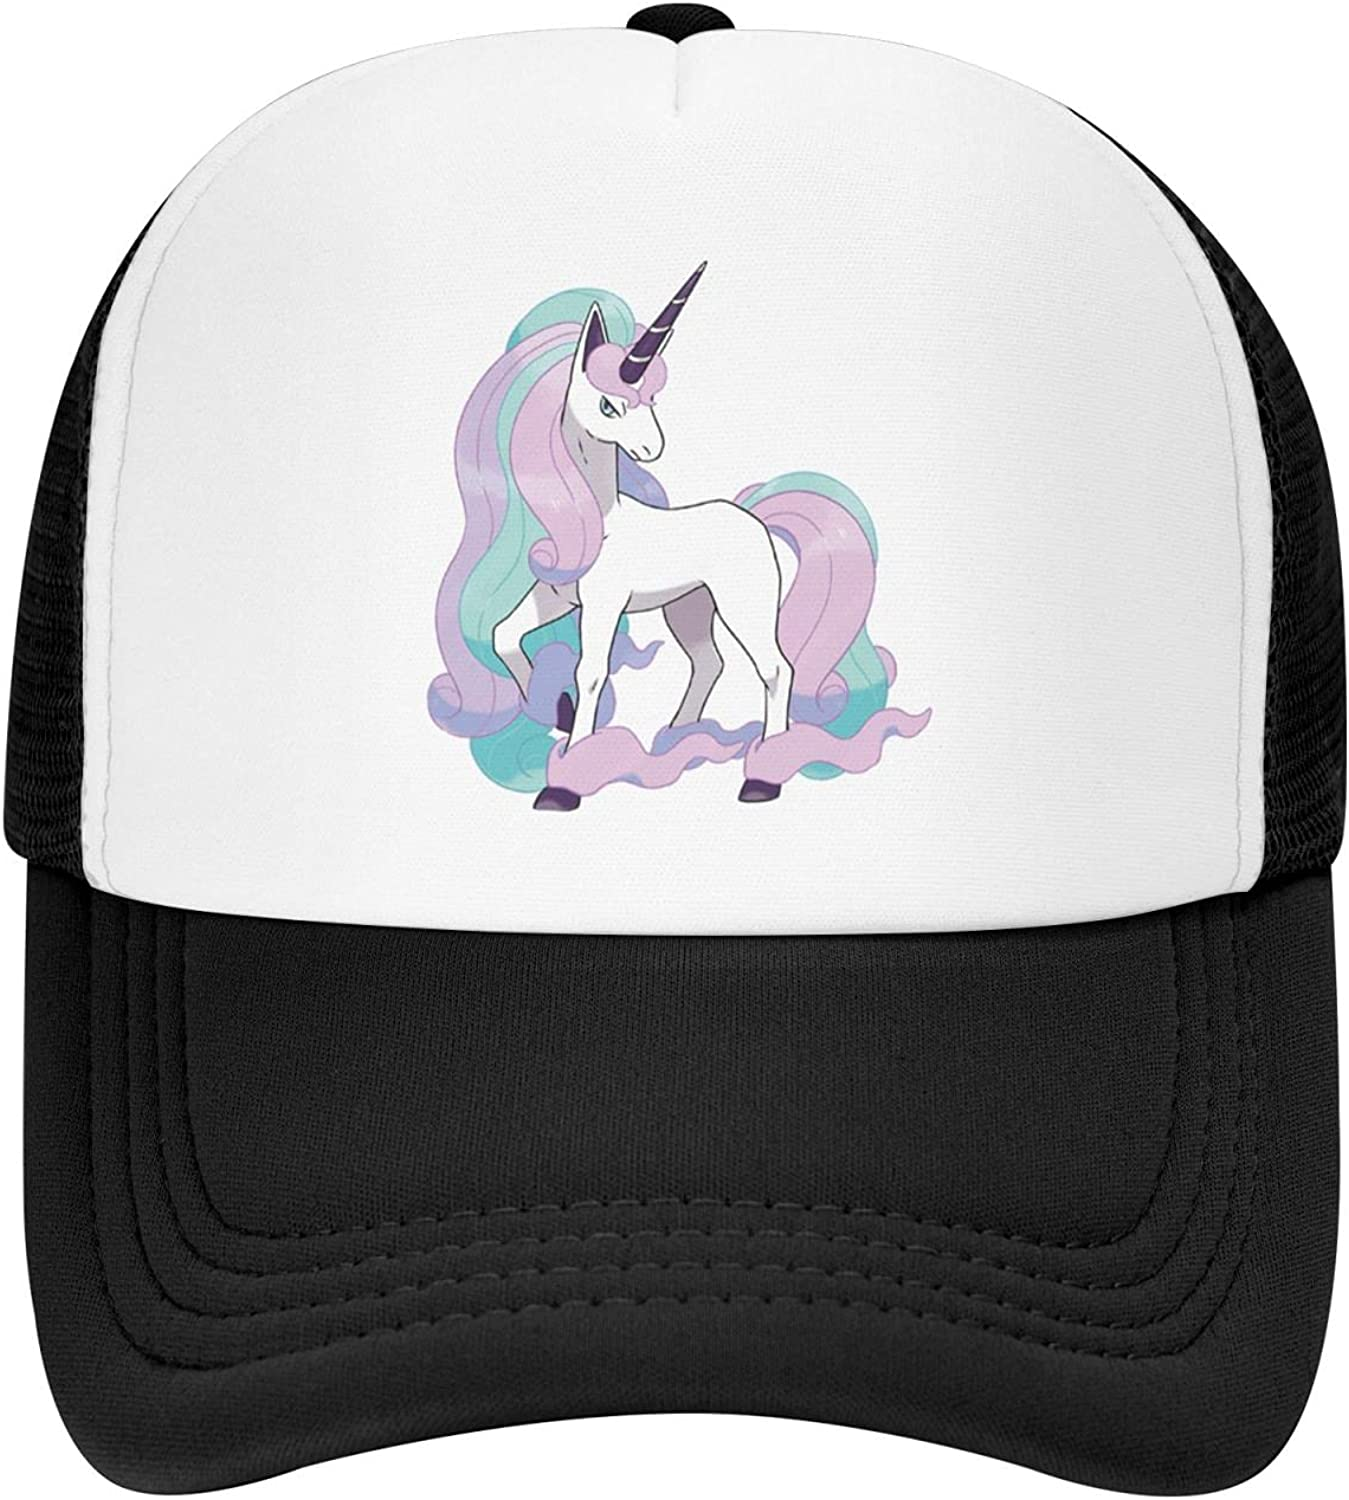 Memphis Mall MWHprint Adult's Trucker Hats for Quality inspection Girls M Adjustable Cool Boys